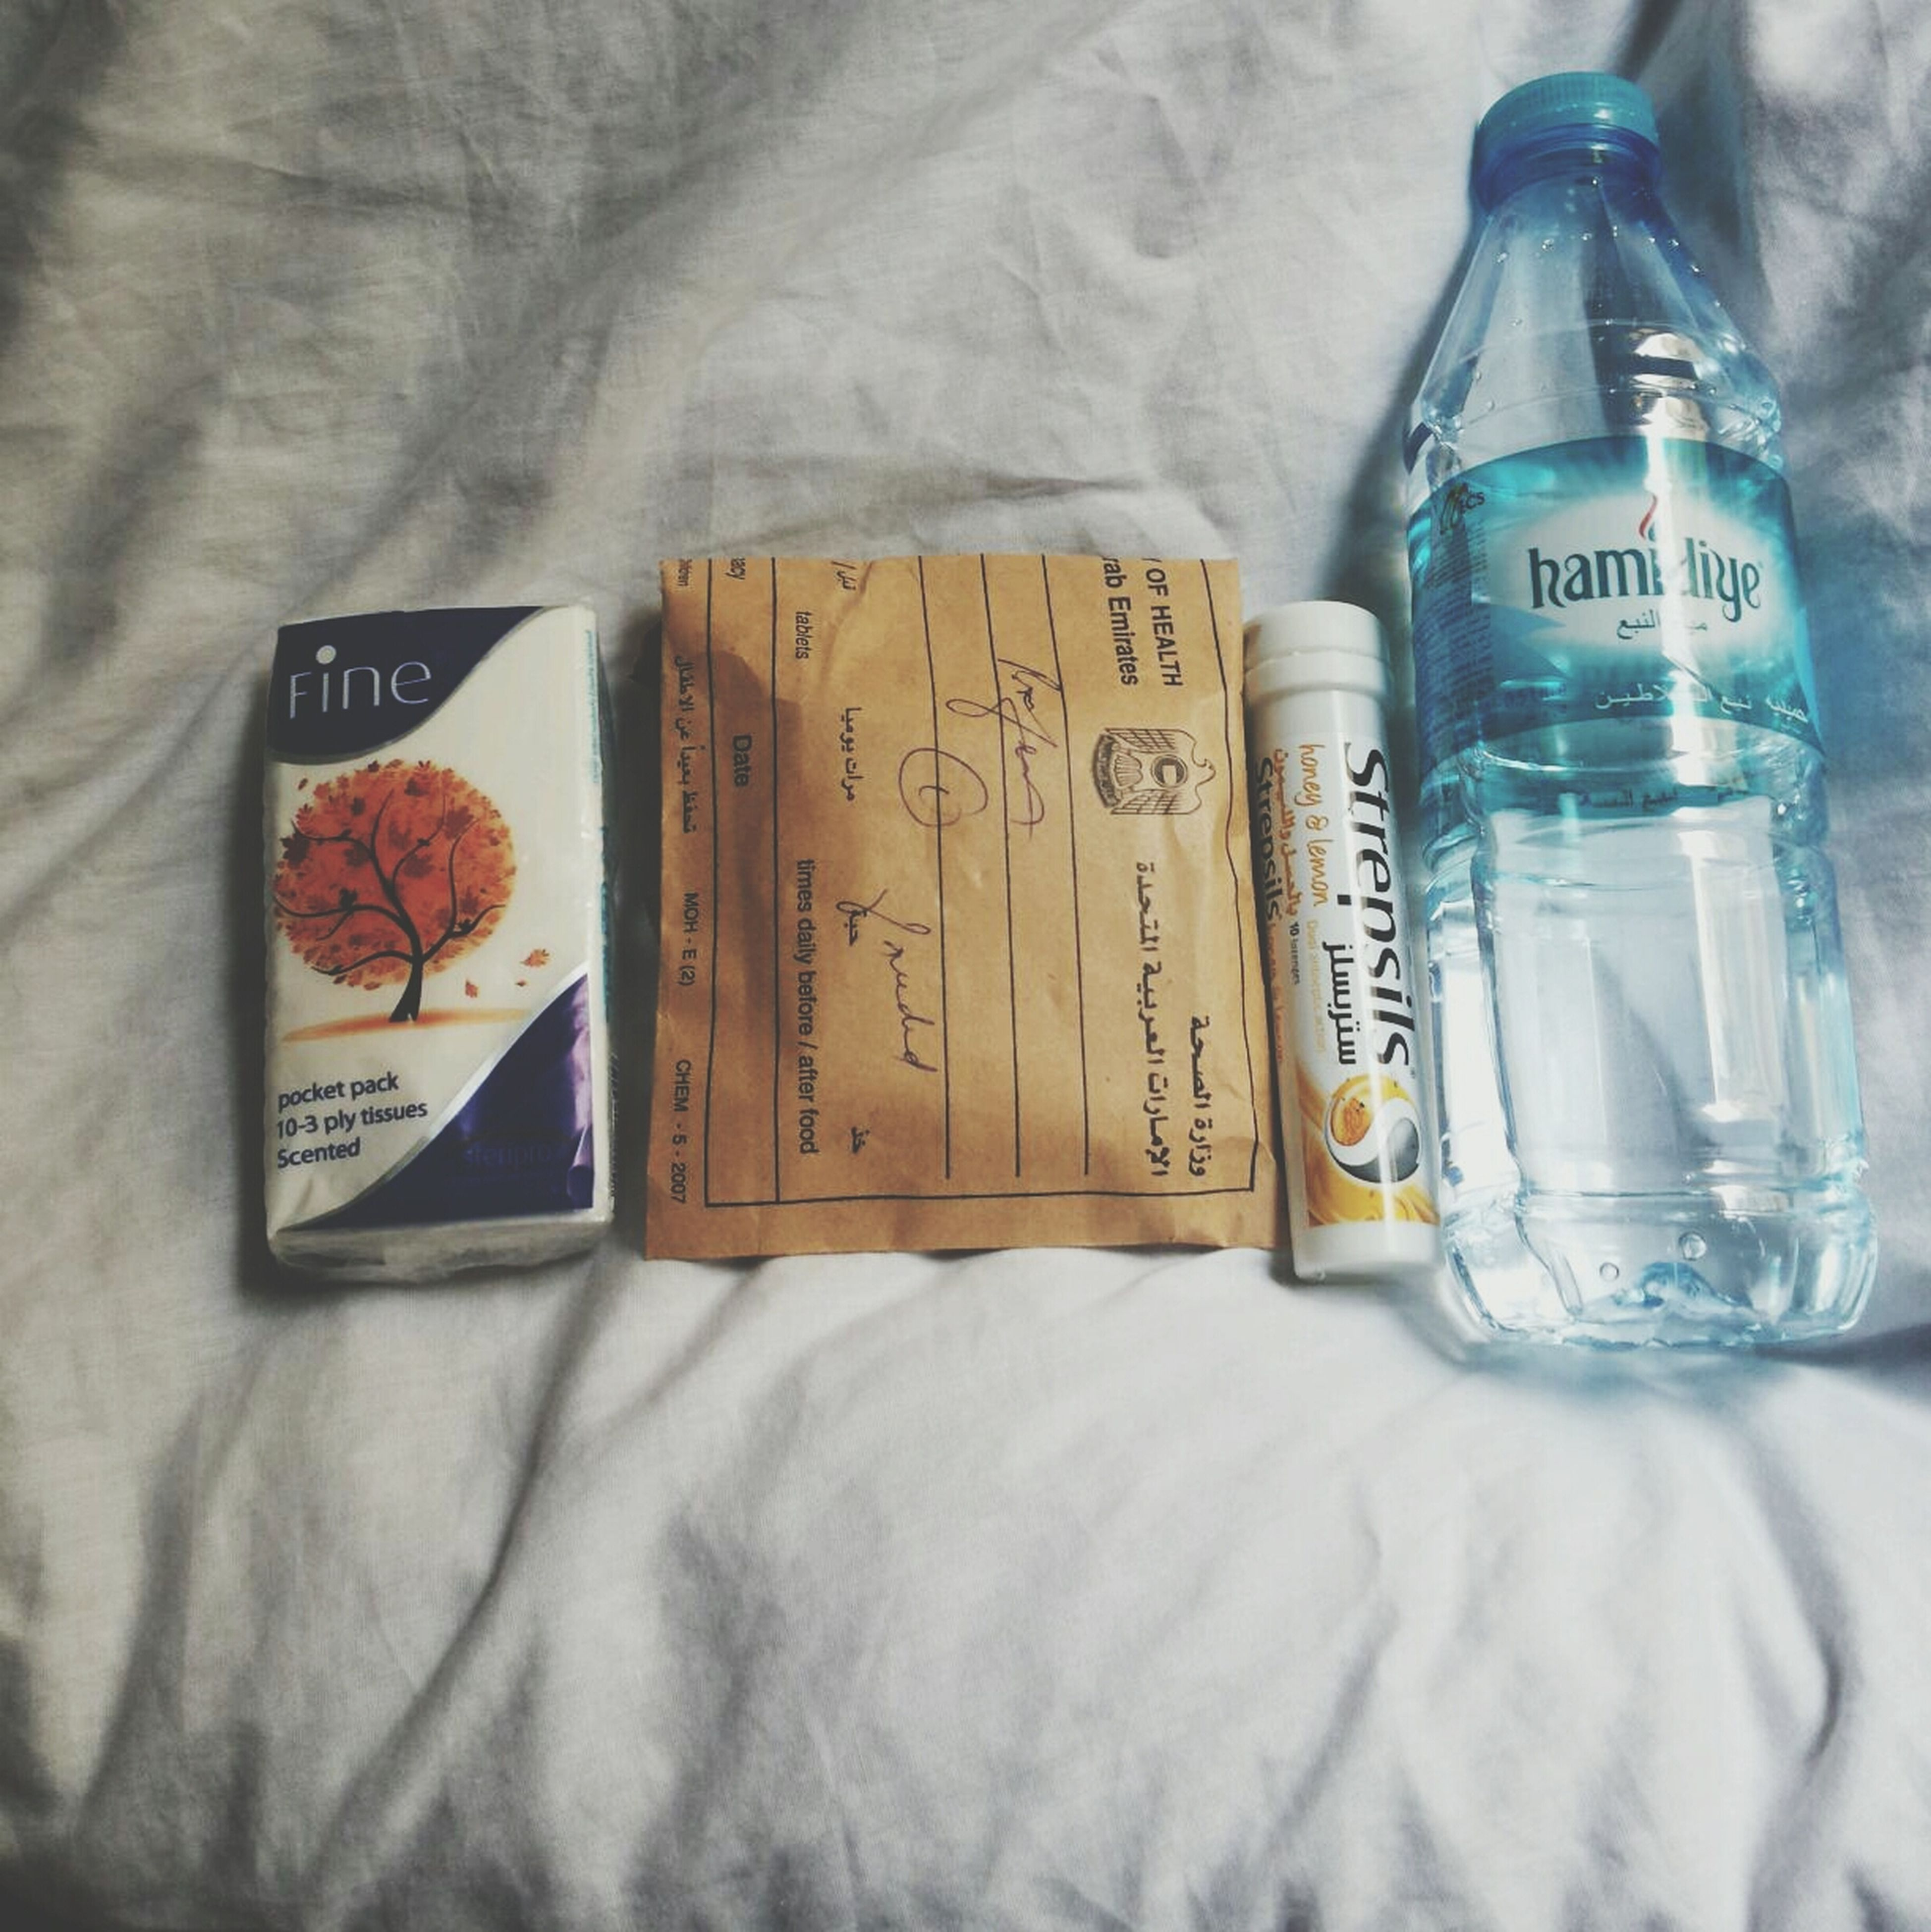 indoors, text, still life, western script, table, close-up, communication, glass - material, drink, paper, food and drink, book, bottle, transparent, drinking glass, no people, refreshment, variation, jar, high angle view